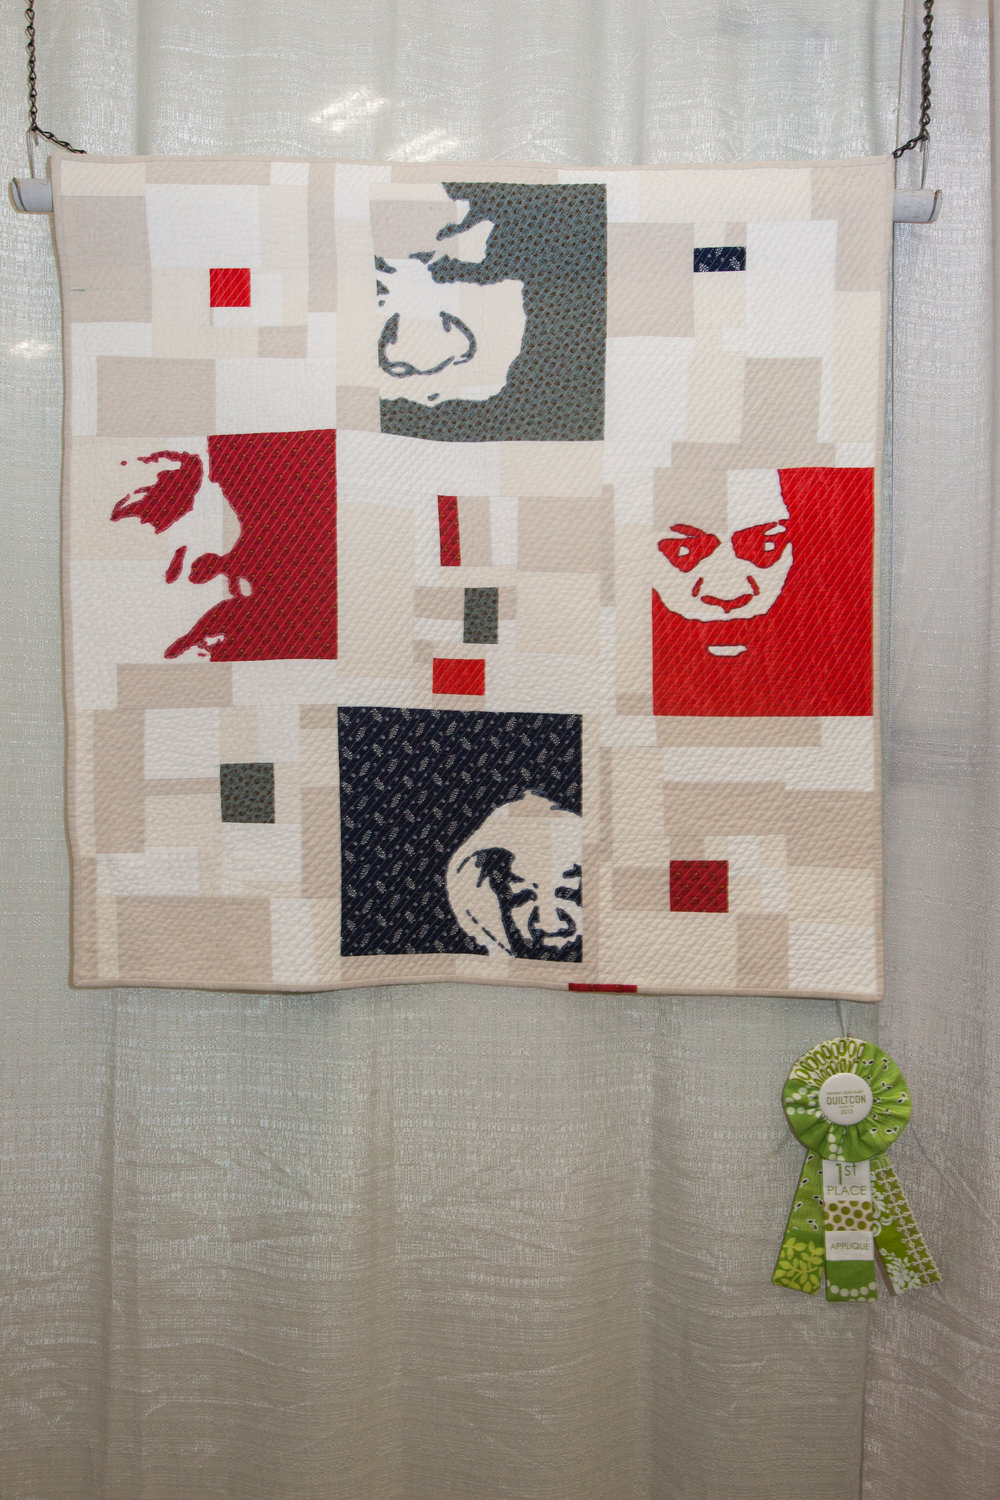 "1st Place: Self Study, 1  36"" x 36"" Pieced and Quilted by Chawne Kimber"